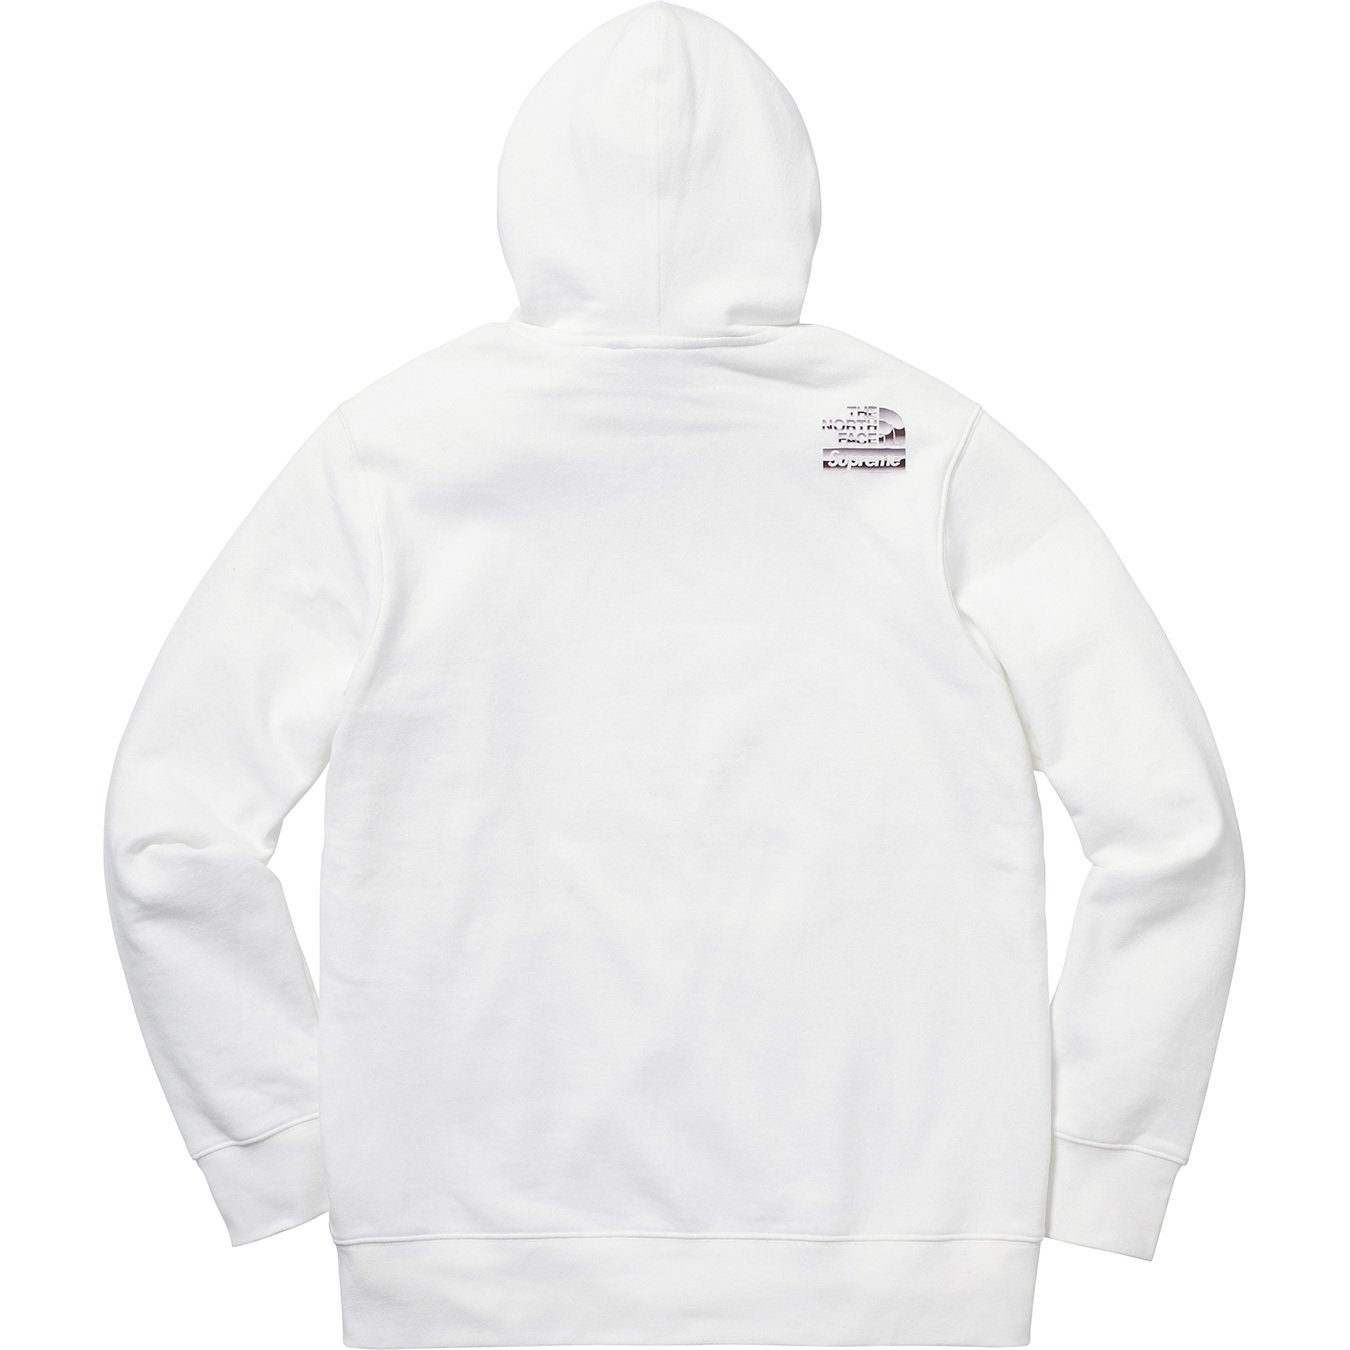 supreme-the-north-face-18ss-release-week7-20180407-metallic-logo-hooded-sweatshirt